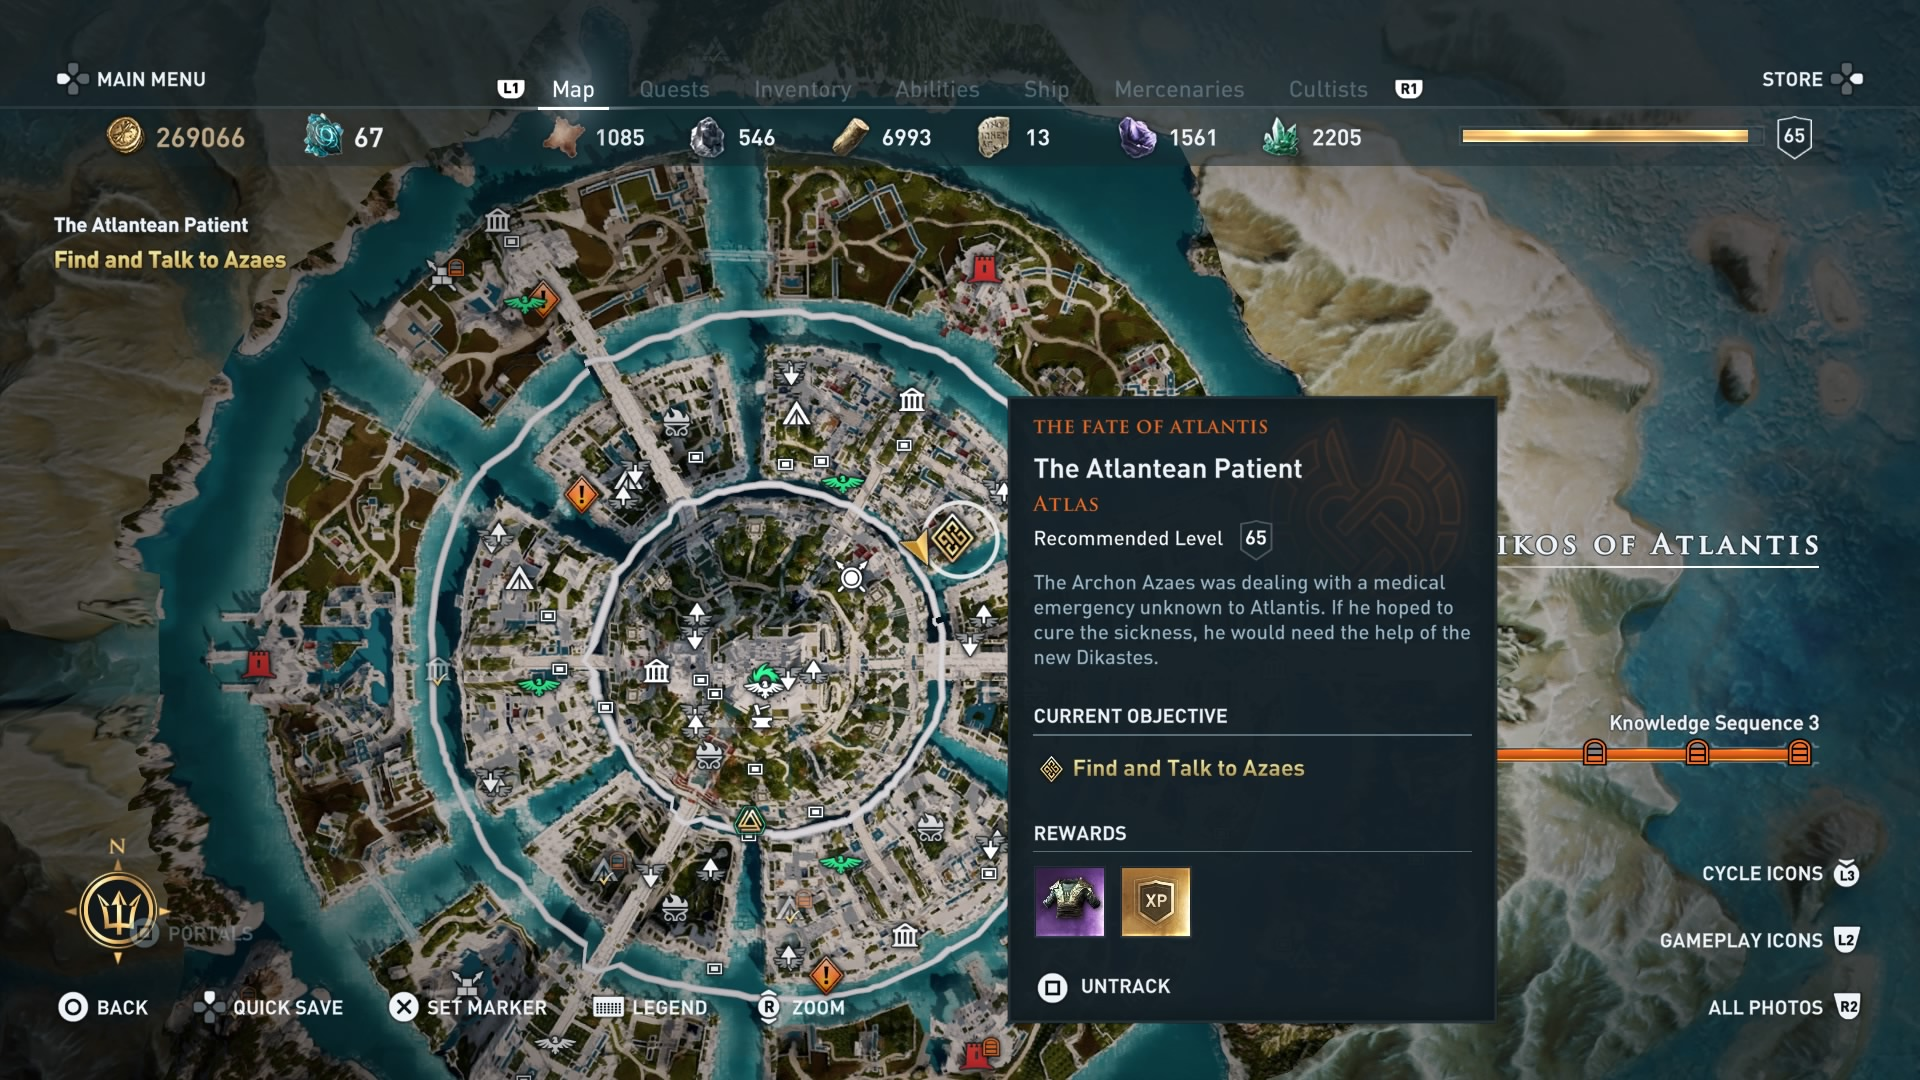 Assassin S Creed Odyssey Judgement Of Atlantis Choices And Ending Information